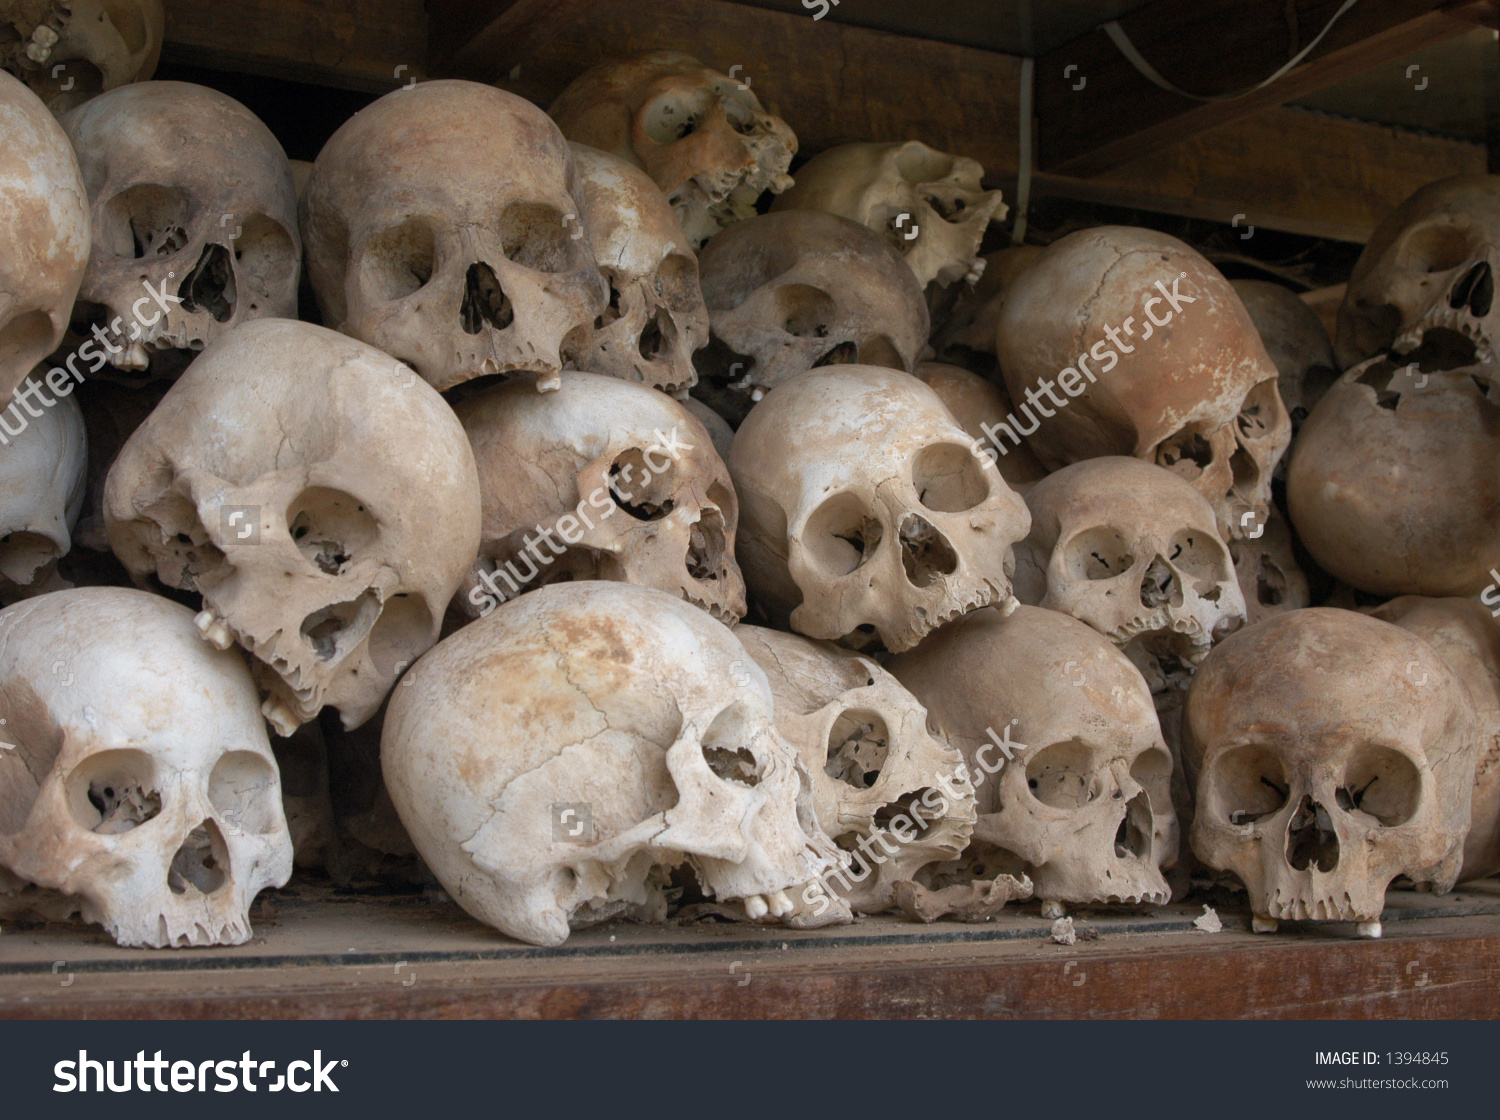 Skulls Mass Grave Khmer Rouge Victims Stock Photo 1394845.